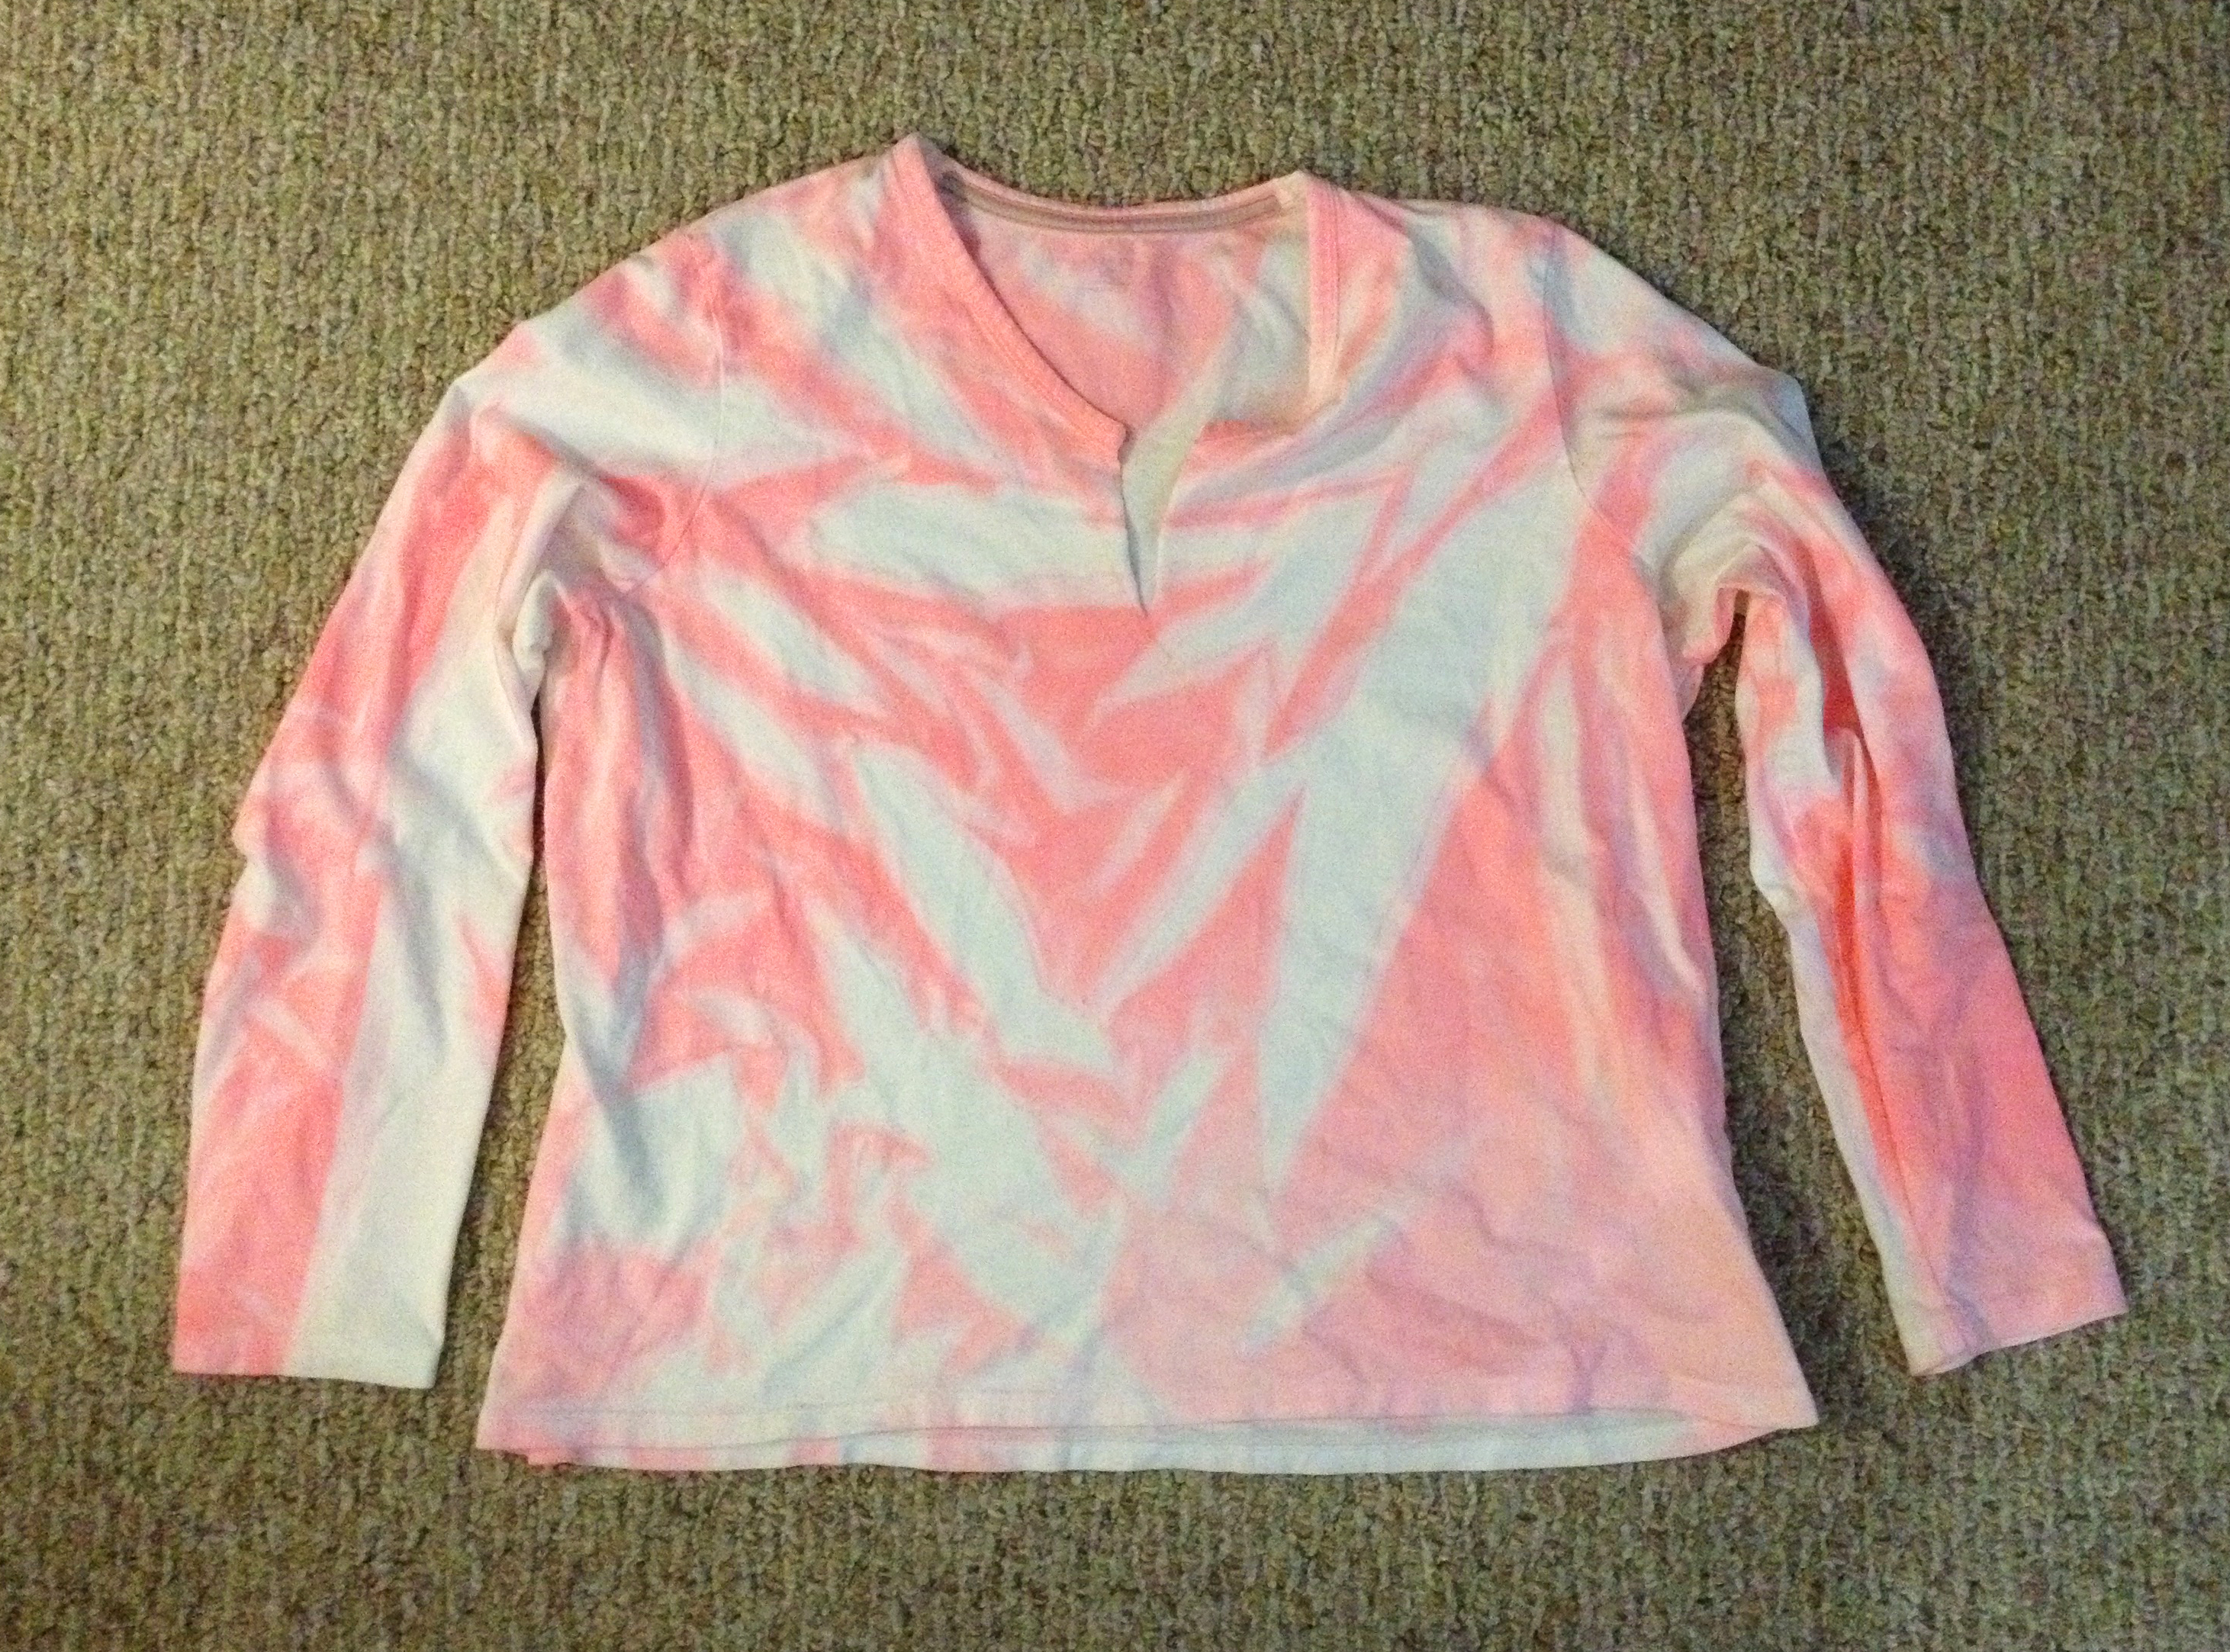 Making a Pink Tie-Dye Costume